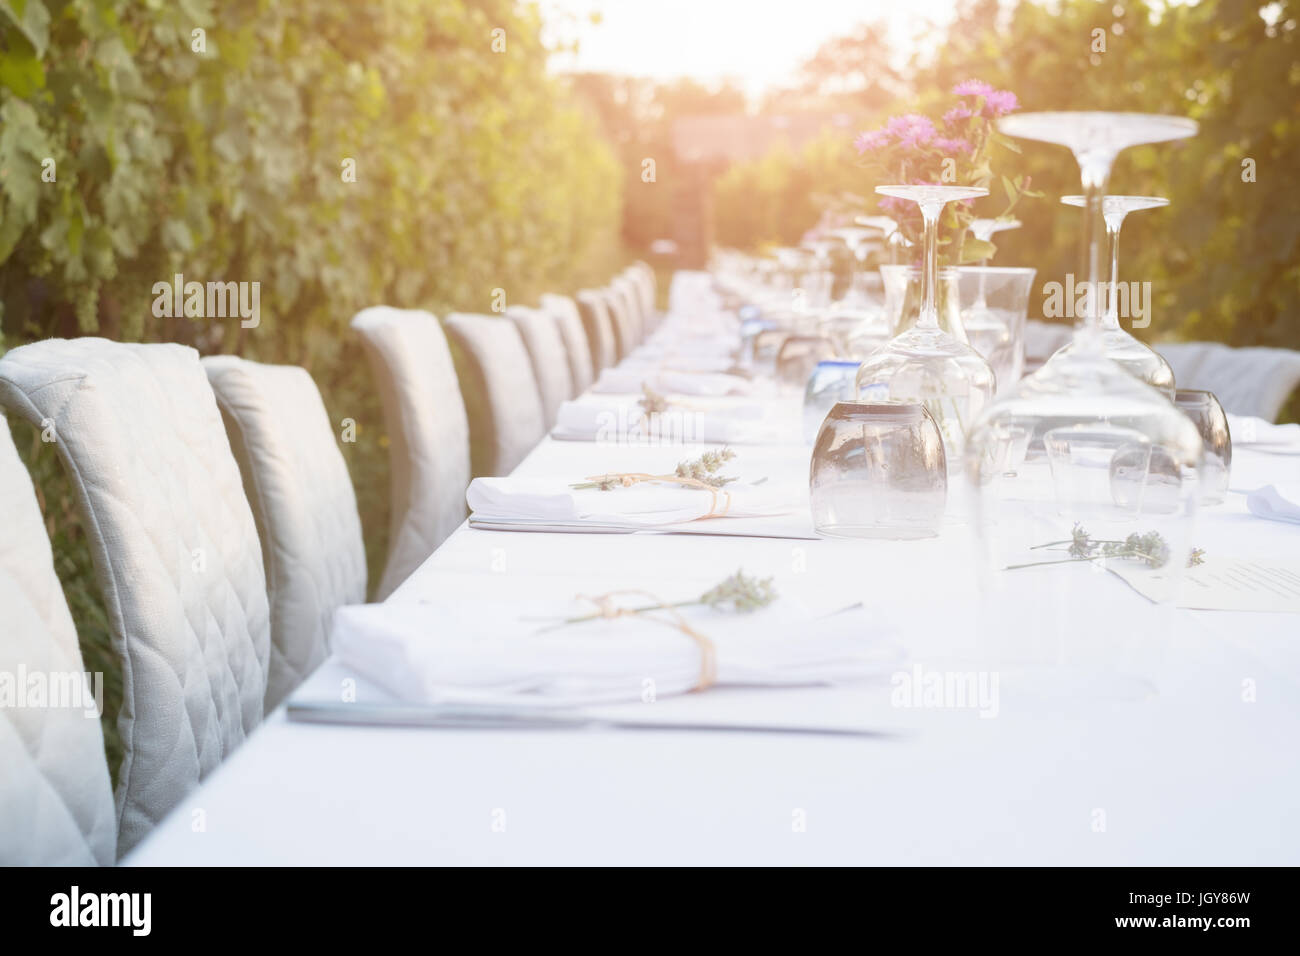 Party table set for social event in the countryside - Stock Image